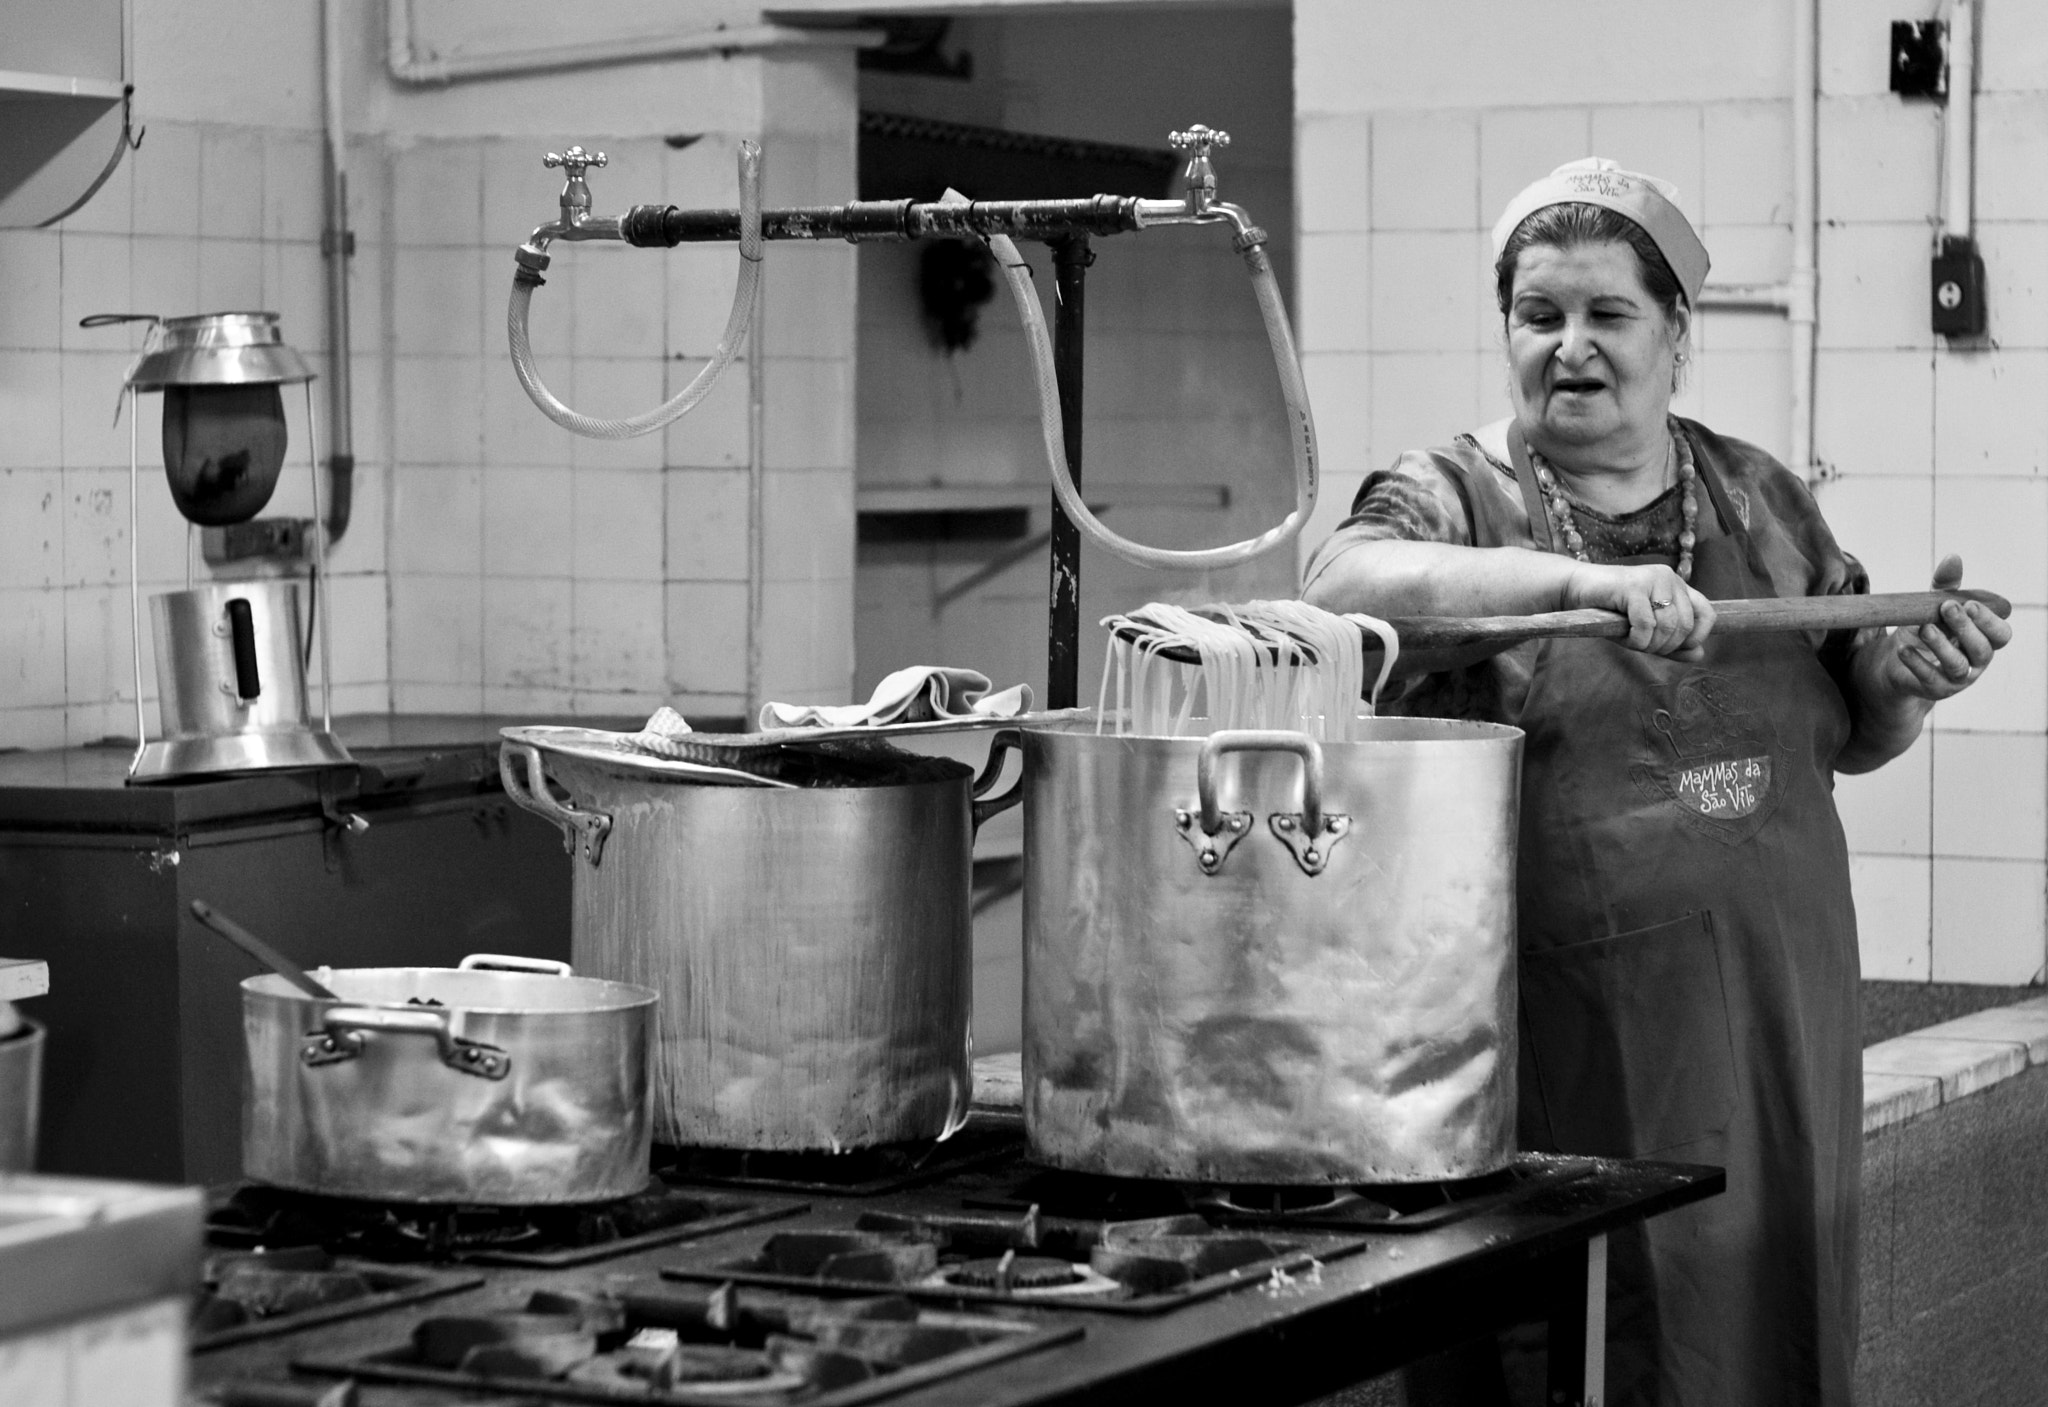 Photograph Italian immigrants in Brazil which, with its traditional Italian cuisine by Juliana Schorck on 500px